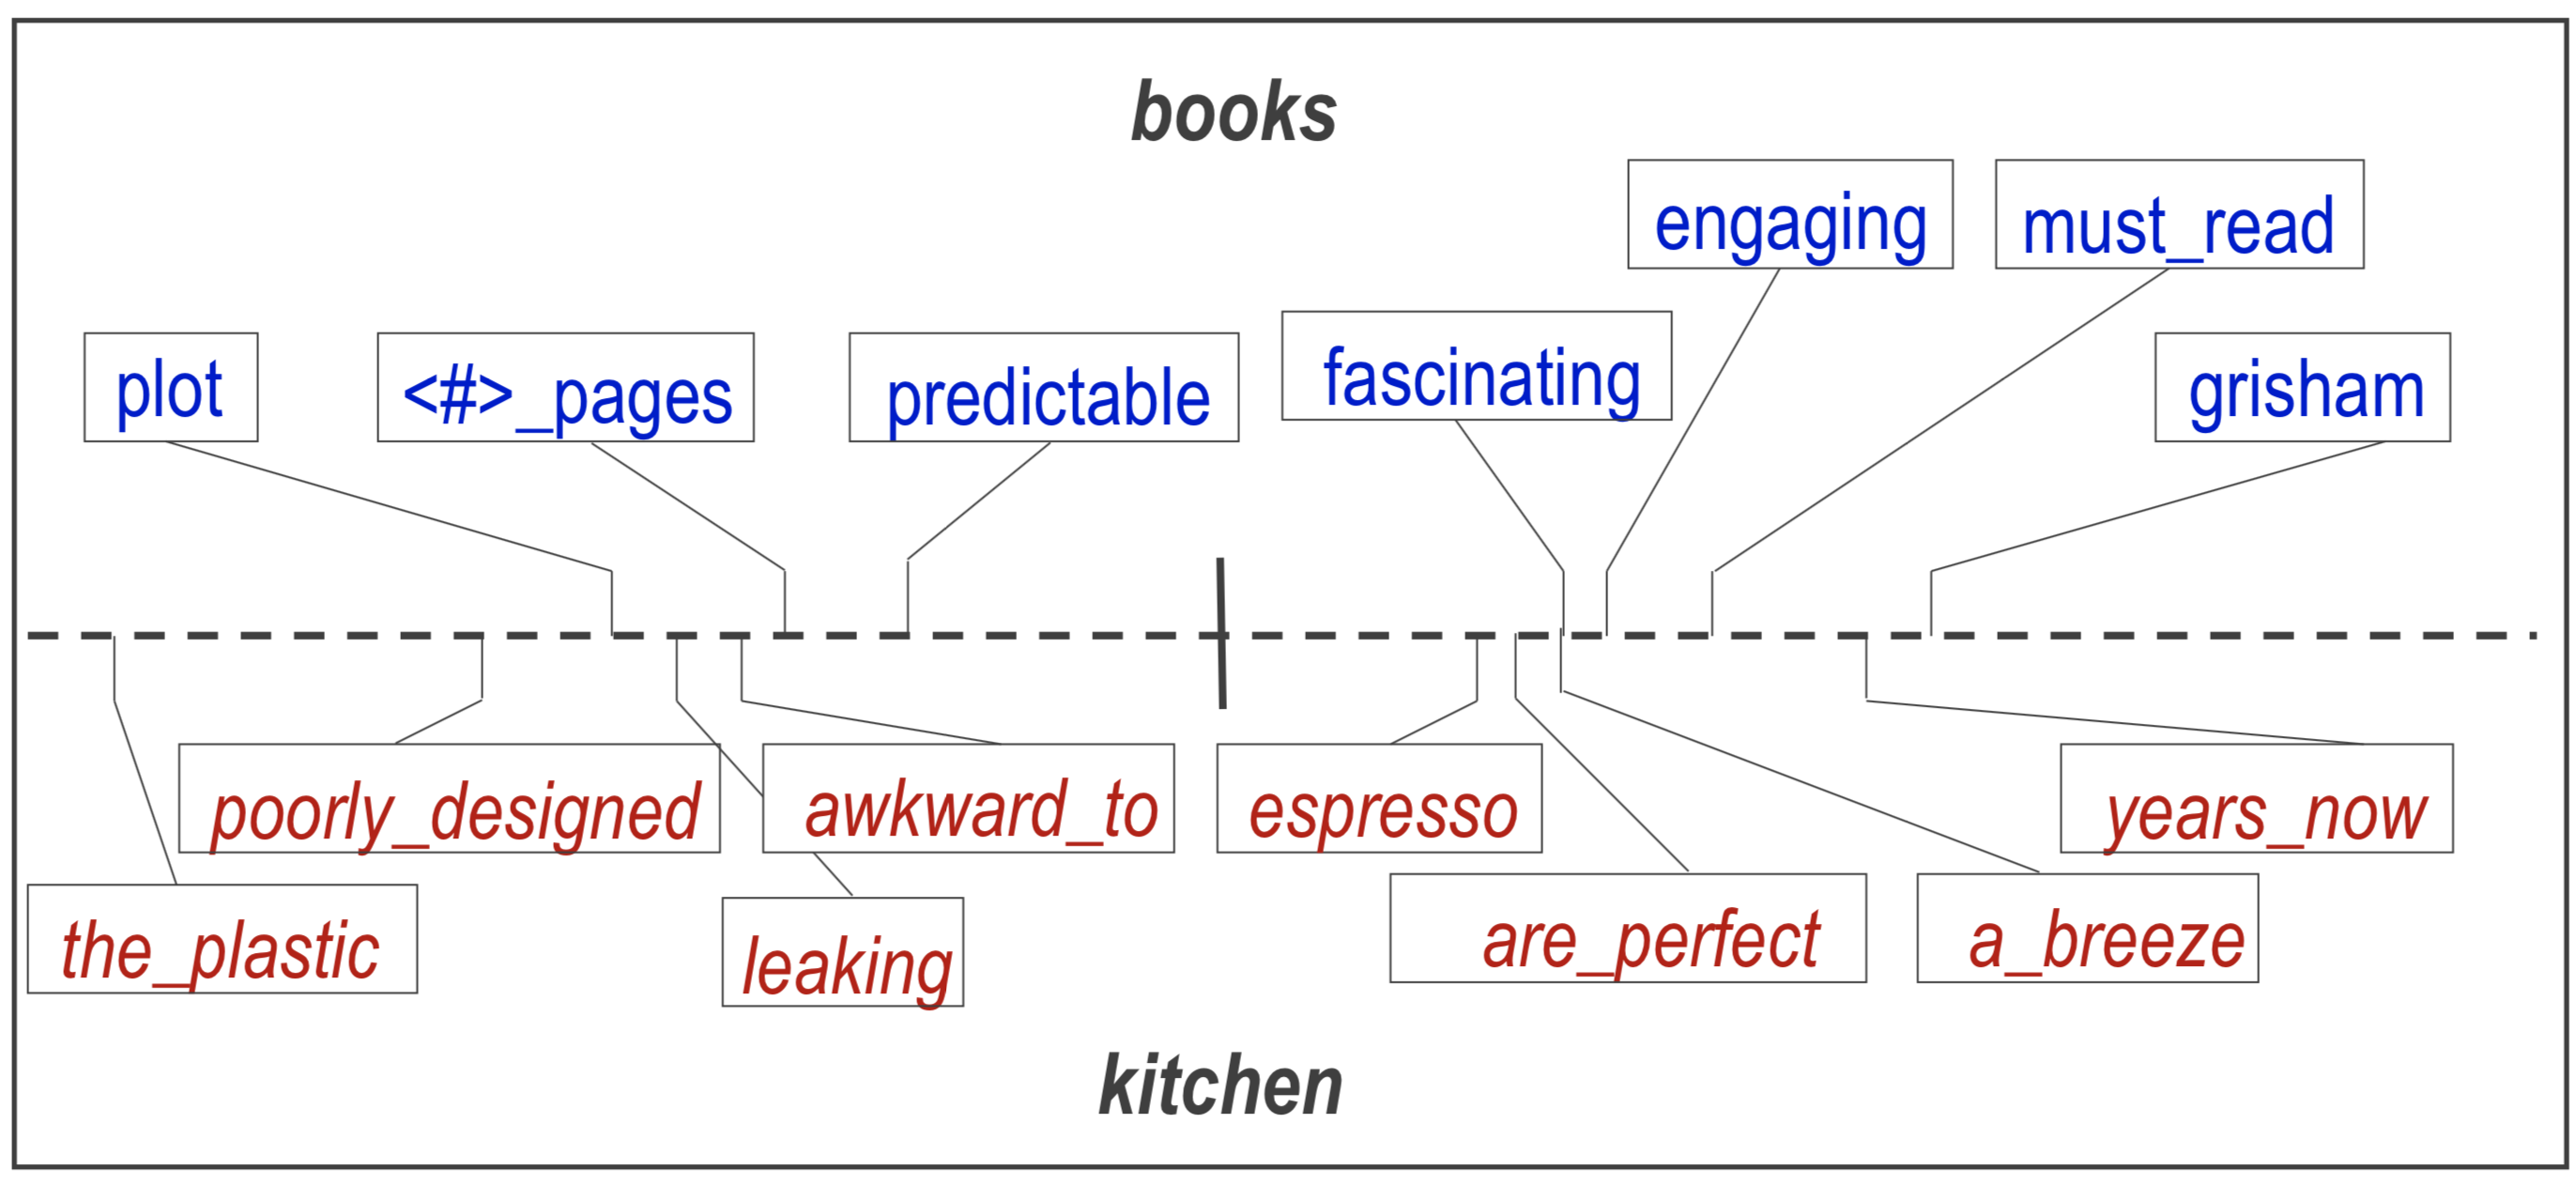 SCL book and kitchen domain learnt feature mapping